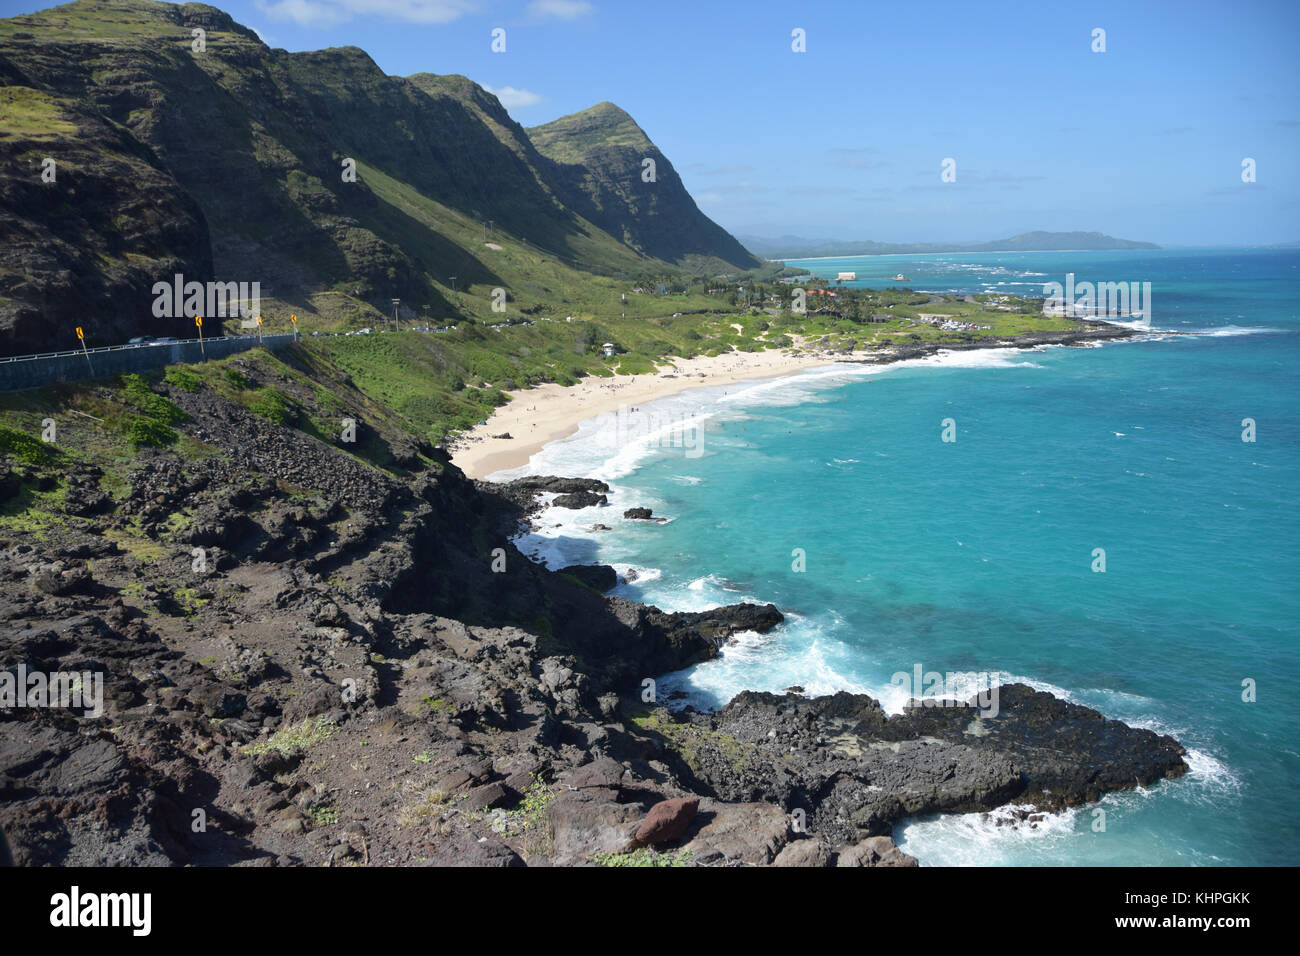 View of Sandy Beach from Halona Blowhole - Oahu, Hawaii - Stock Image